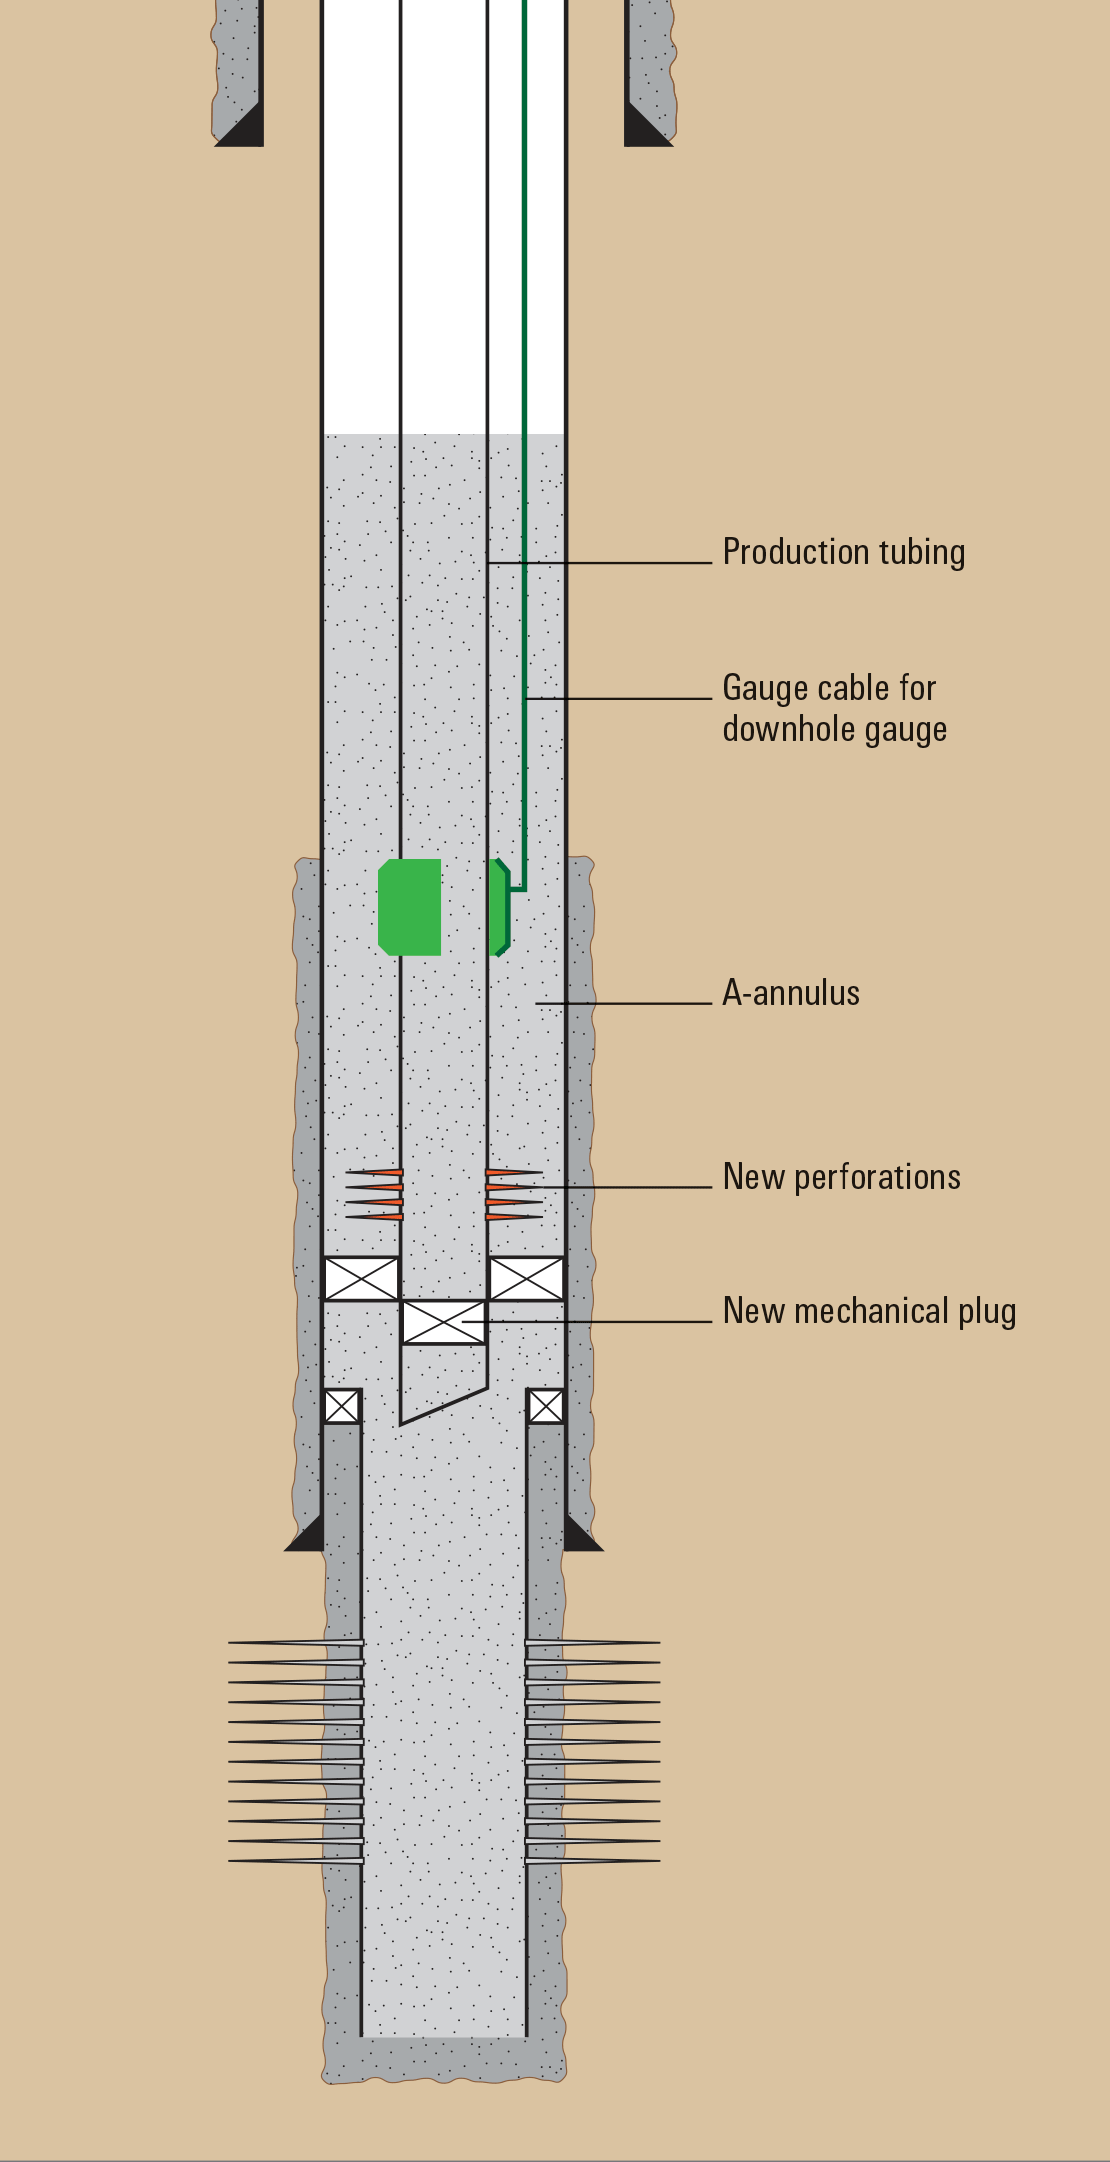 Diagram showing reservoir section, A-annulus, and production tubing with control lines and packers.